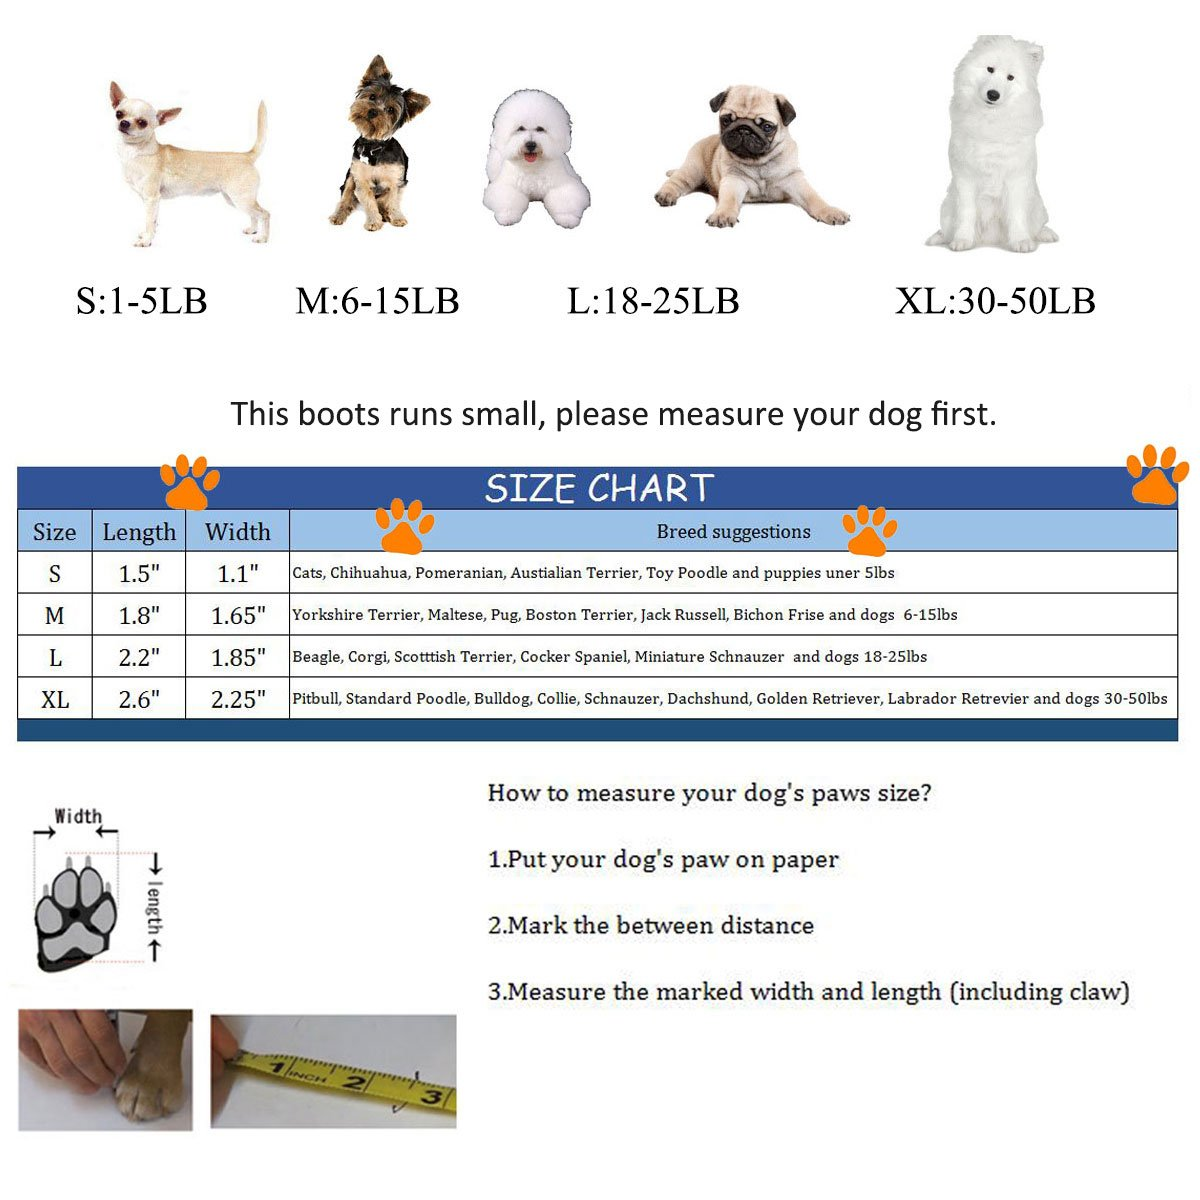 Corgi age weight chart berry blog dog ideal weight chart image collections free any examples sizes by choice nvjuhfo Choice Image